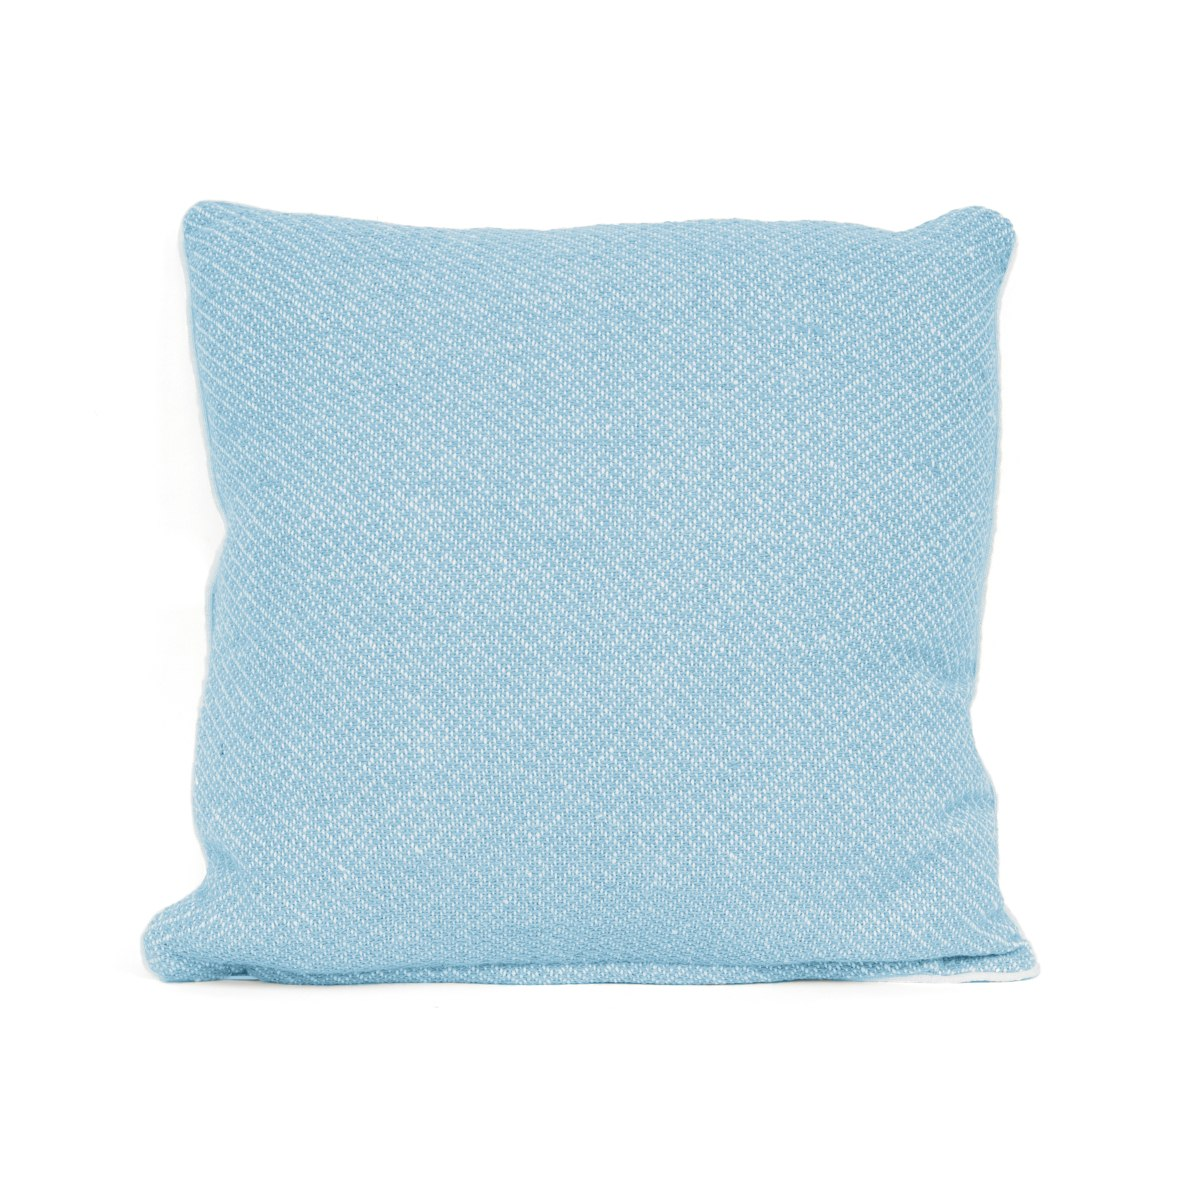 Cushion Cozy blue